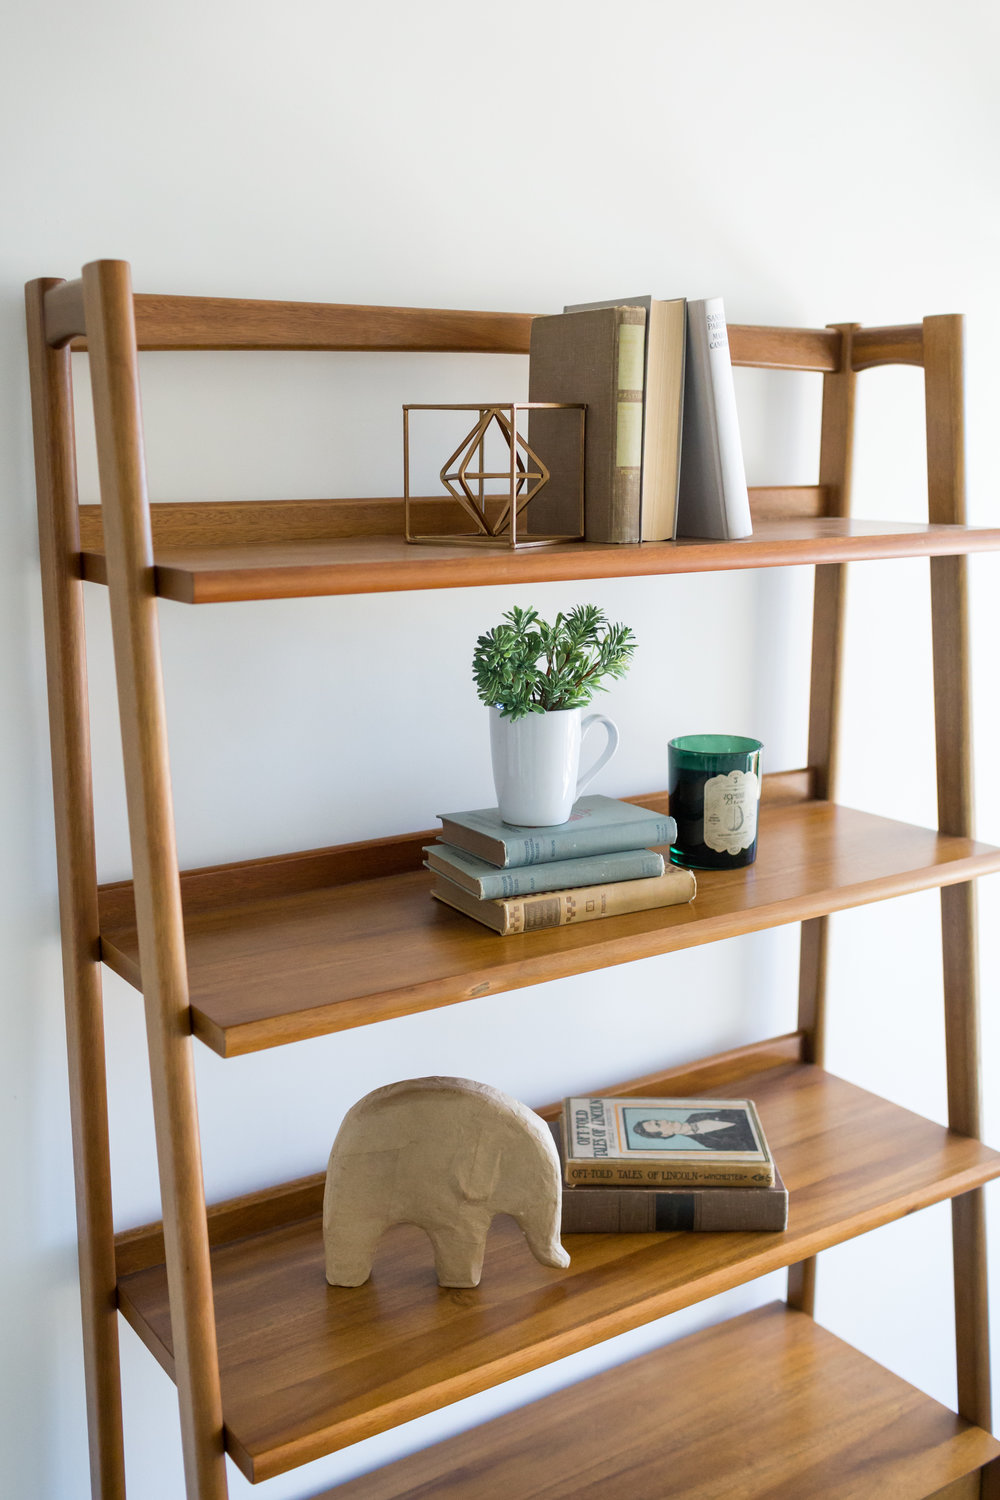 Neutral, modern shapes and vintage books fill out the shelves.